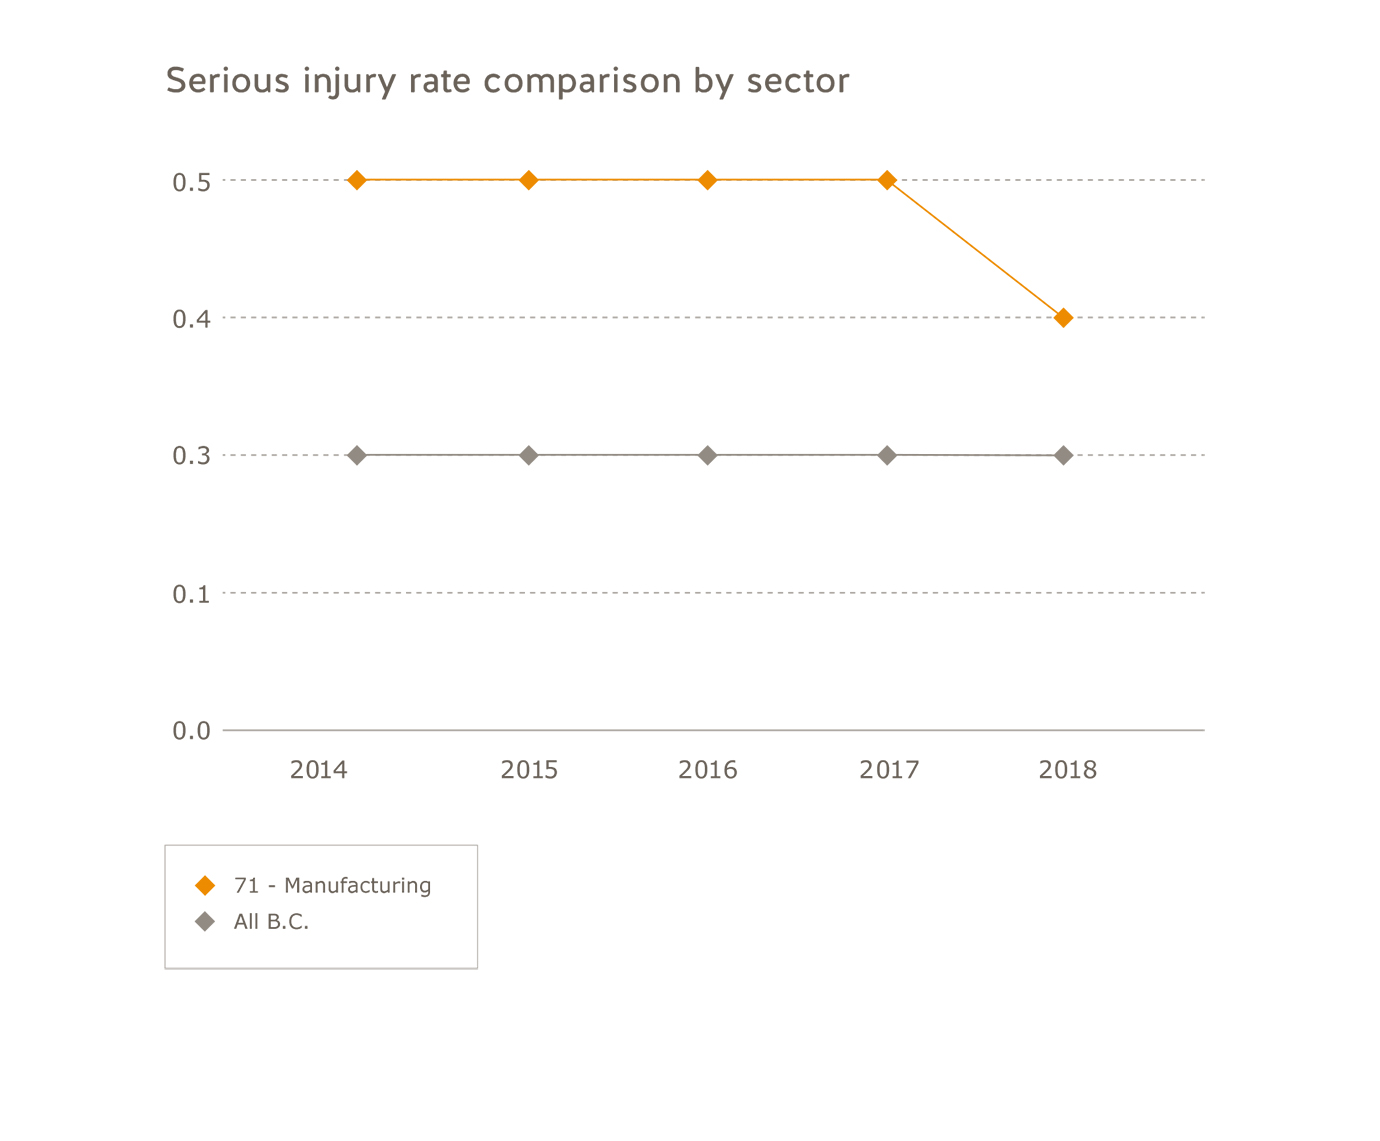 Manufacturing  sector serious injury rate comparison by sector for 2014 to 2018. All B.C.: 2014=0.3; 2015=0.3; 2016=0.3; 2017=0.3; 2018=0.3. Manufacturing: 2014=0.5; 2015=0.5; 2016=0.5; 2017=0.5;  2018=0.4.